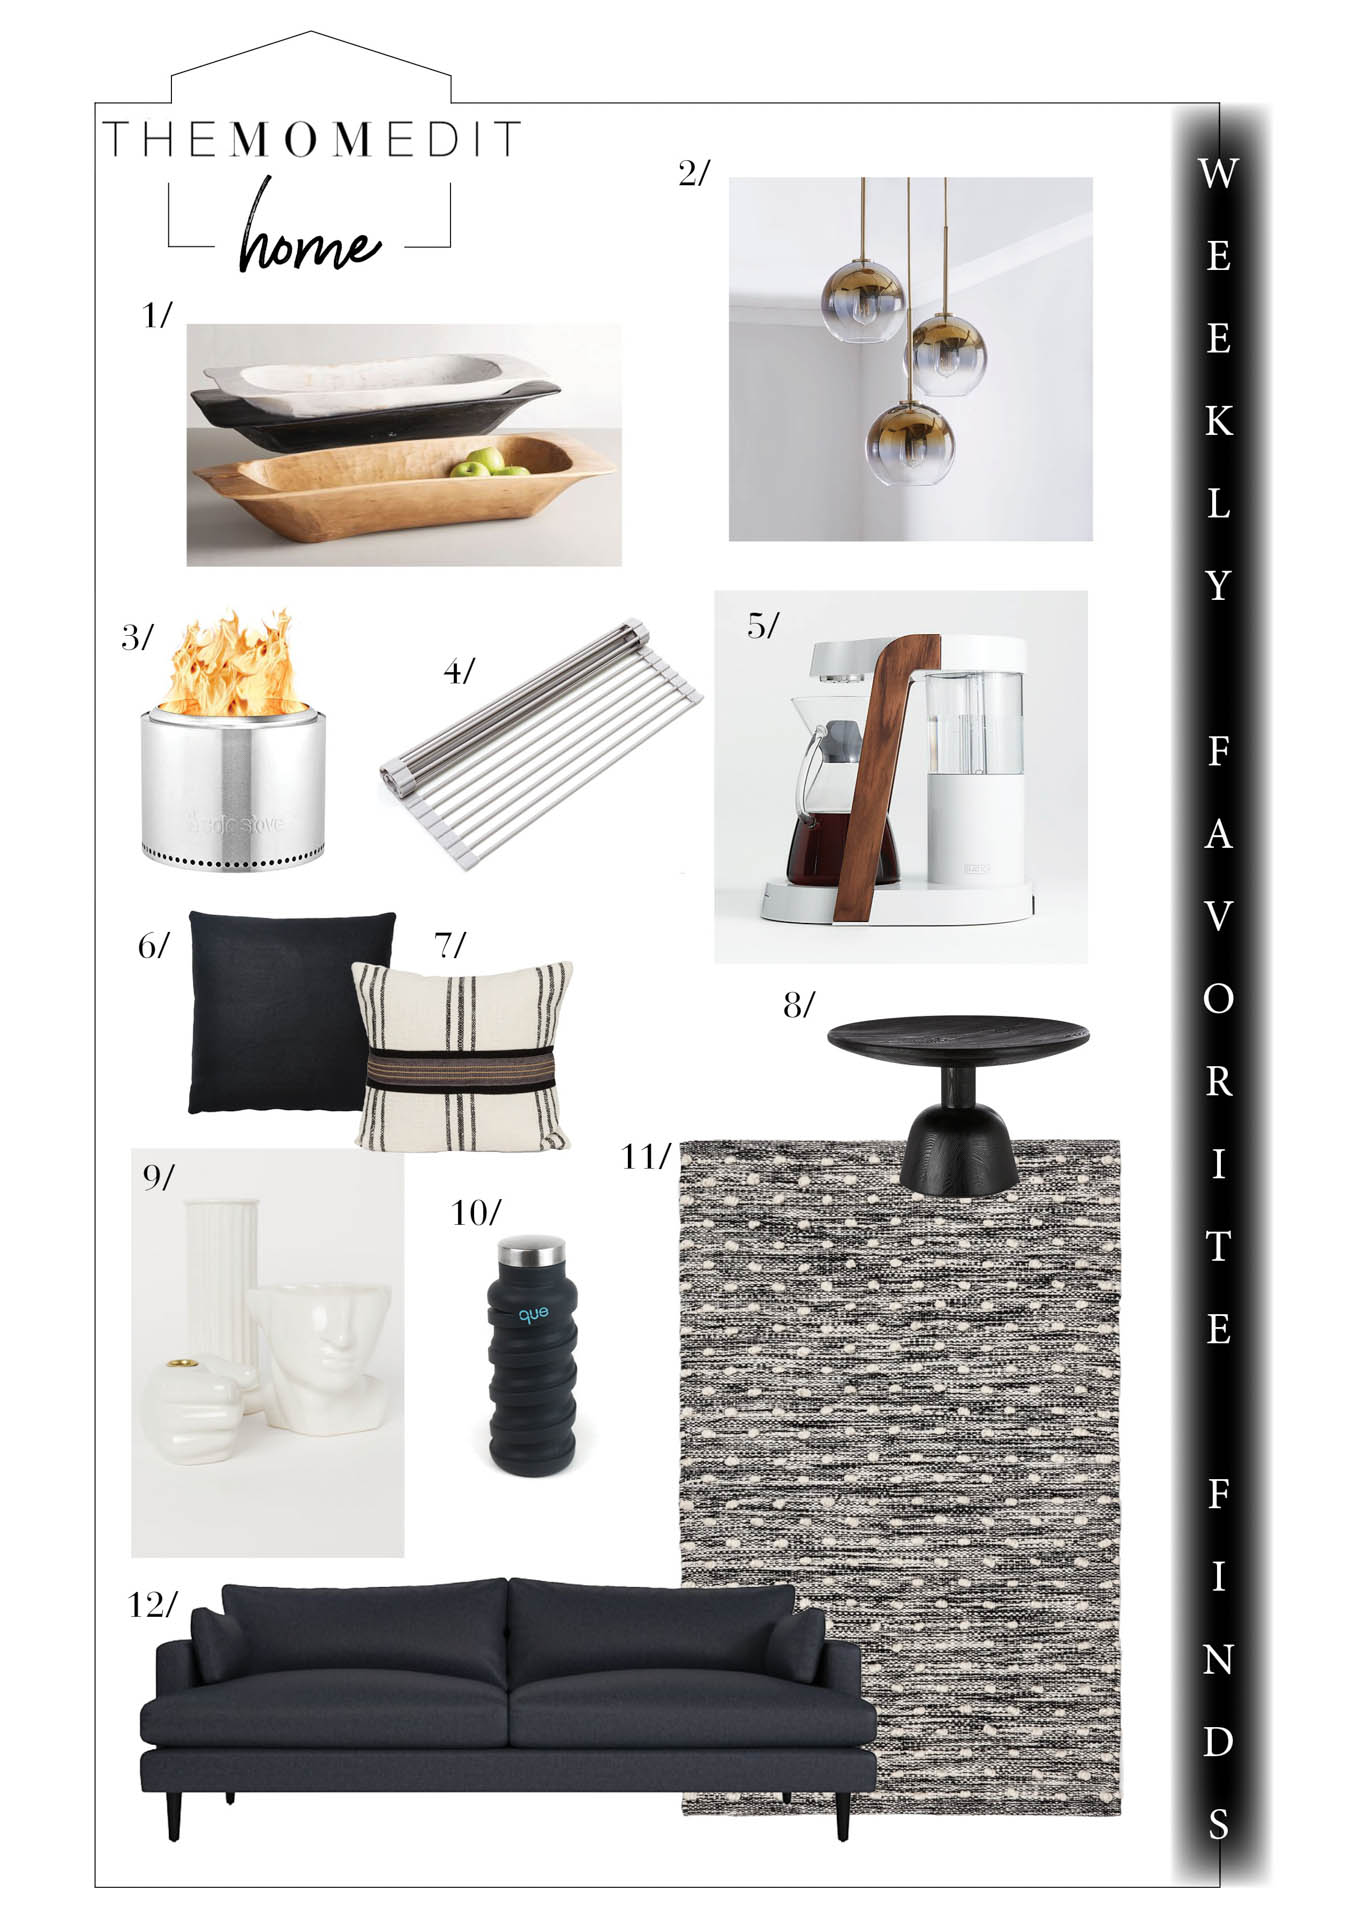 Our fav finds are fun & functional, + we're rounding up fierce after-Christmas & post-holiday home decor sales from Anthro, west elm, Nordstrom, CB2 & more.